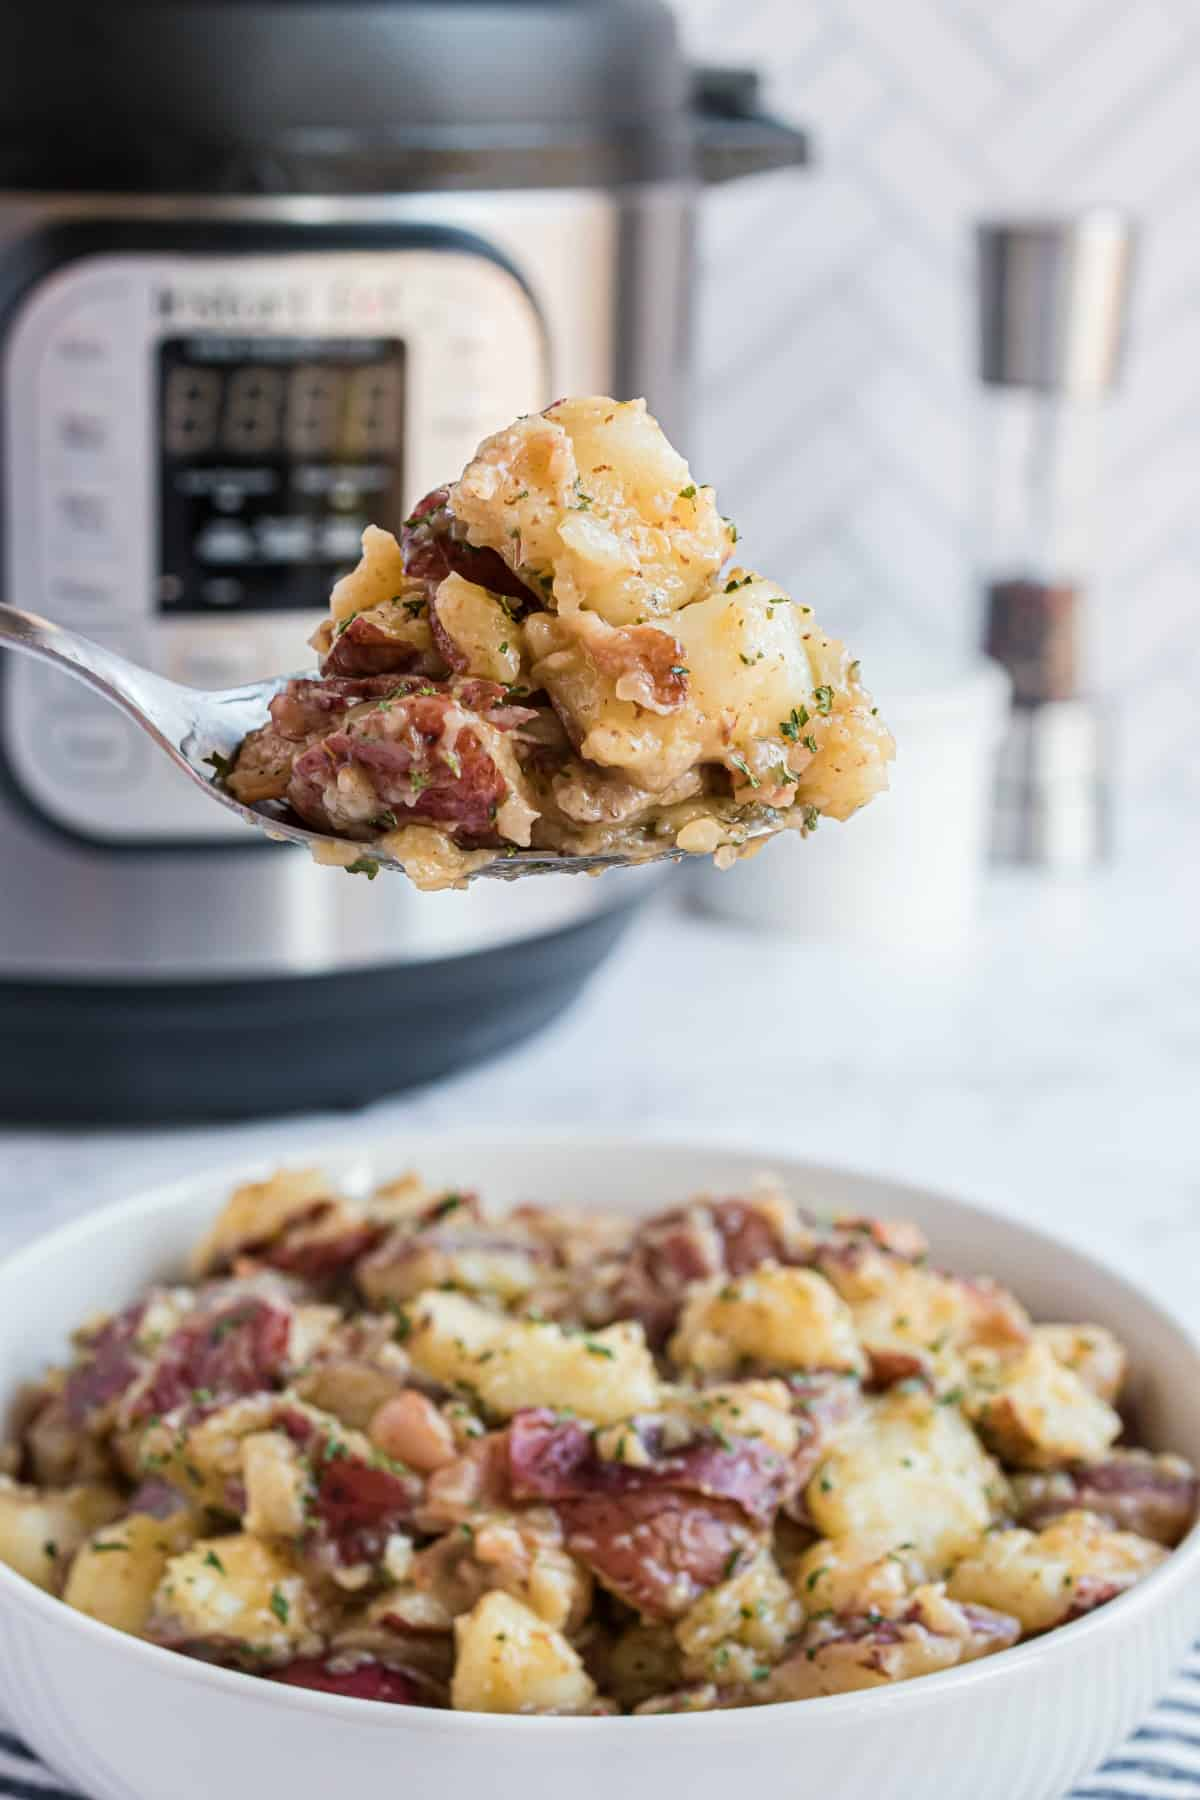 German potato salad with instant pot in background.